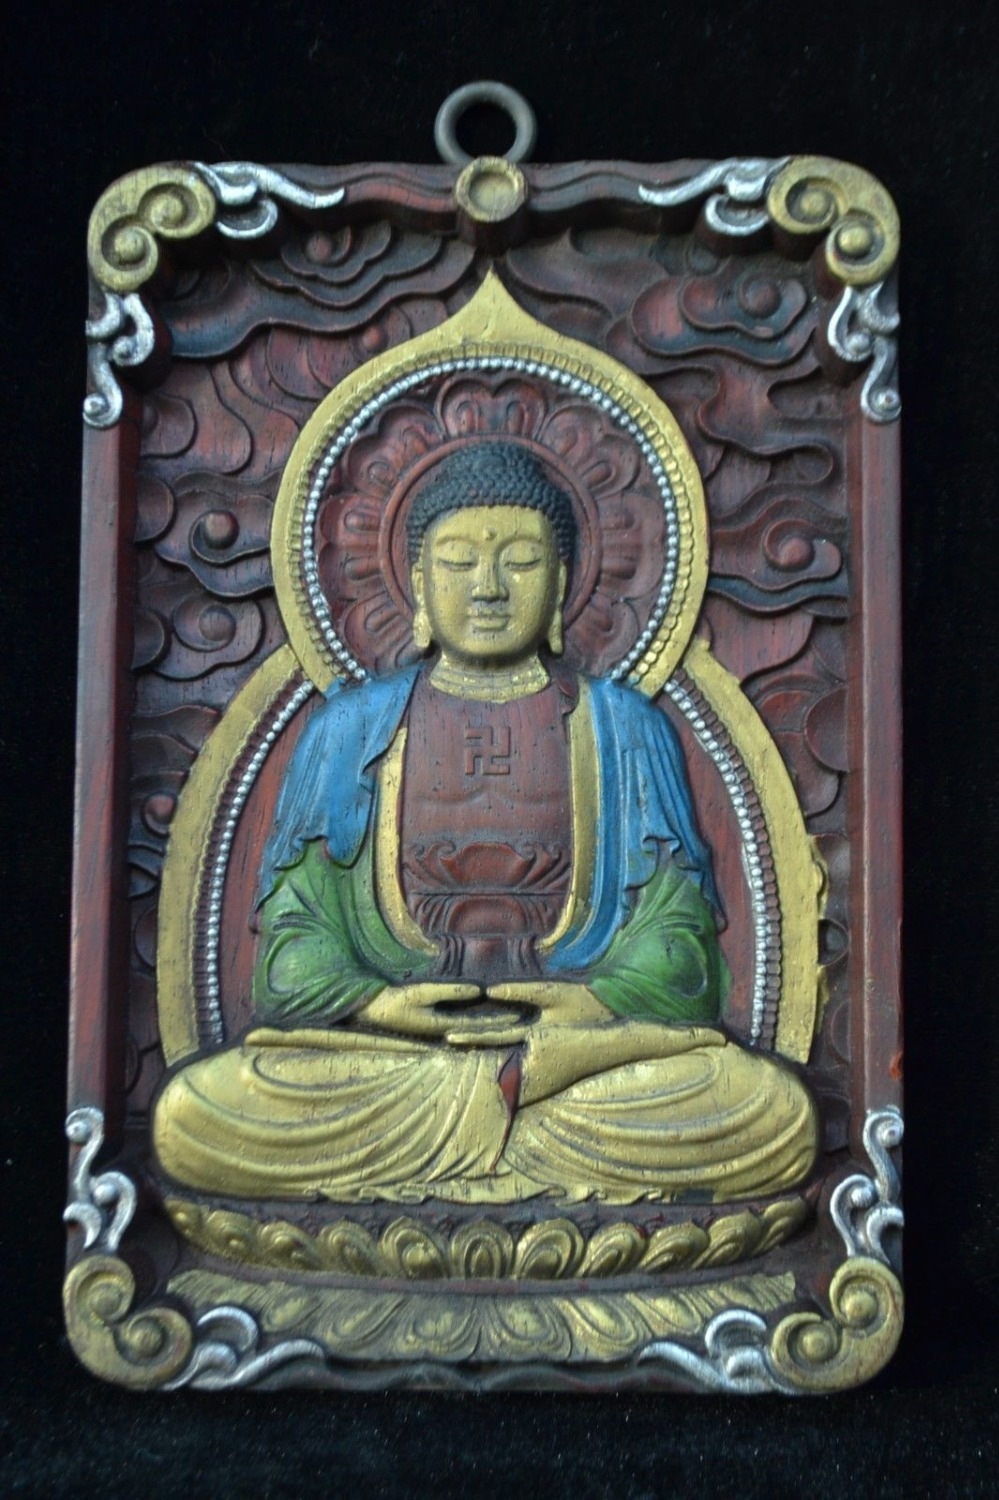 Christmas Antique Collectible Old Wood Carve BUDDHA figure Big Sculpture PRAYER Statue HalloweenChristmas Antique Collectible Old Wood Carve BUDDHA figure Big Sculpture PRAYER Statue Halloween